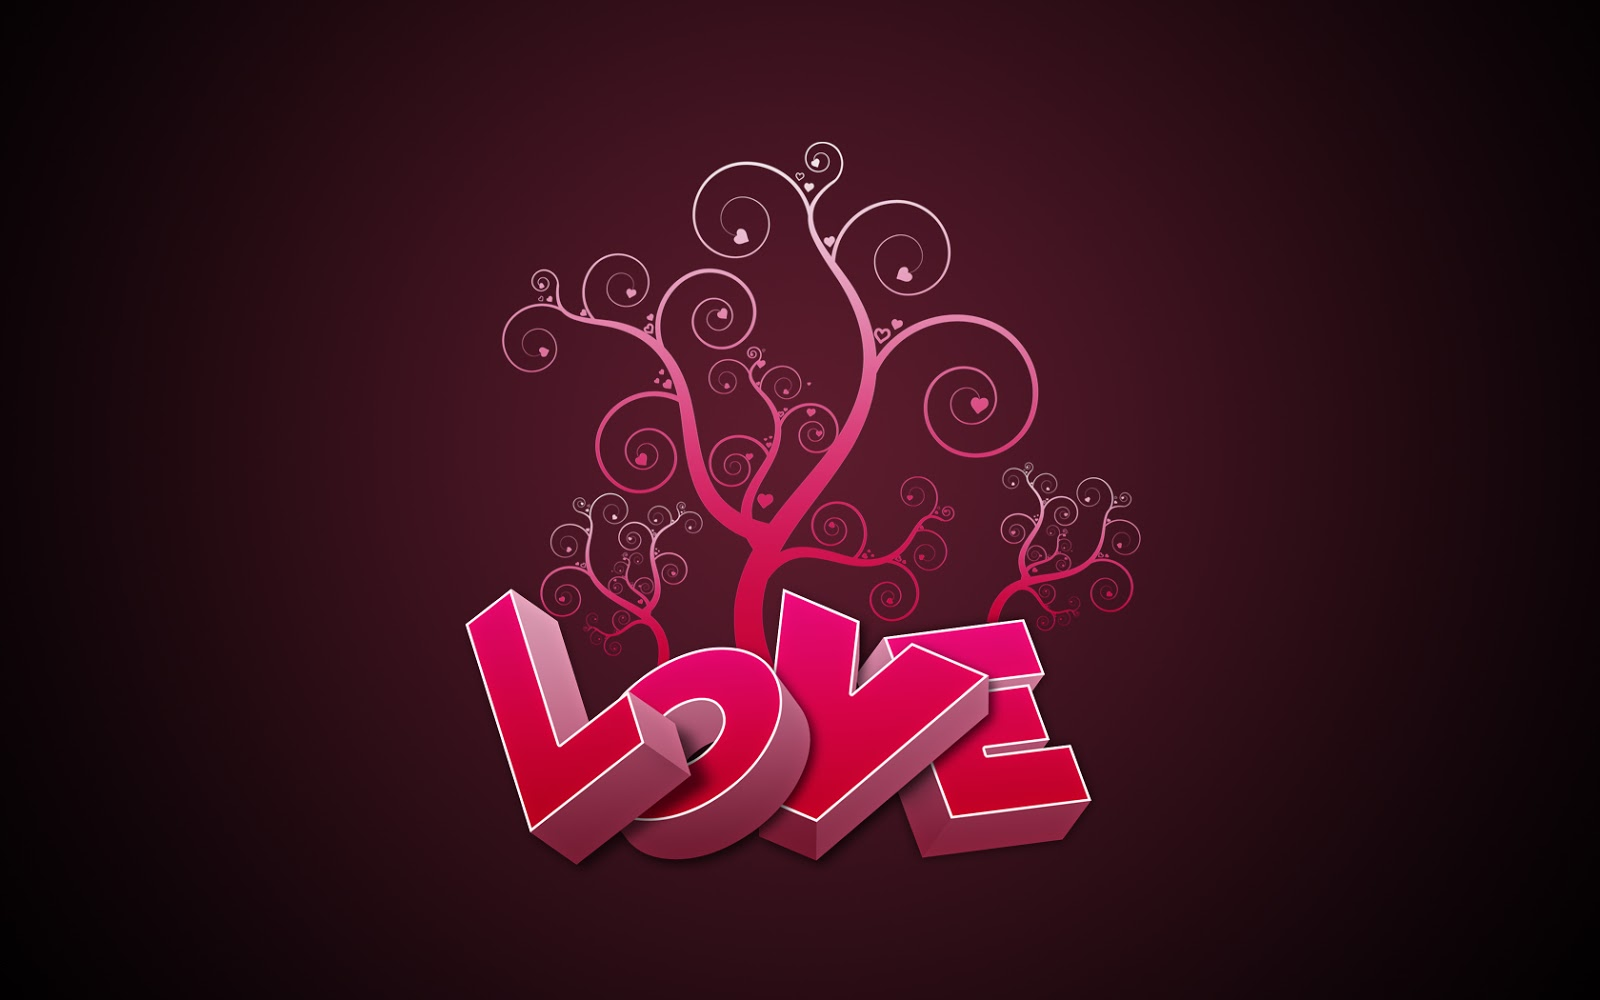 Love Gm Wallpaper Hd : HD Wallpapers: LOVE HD WALLPAPERS